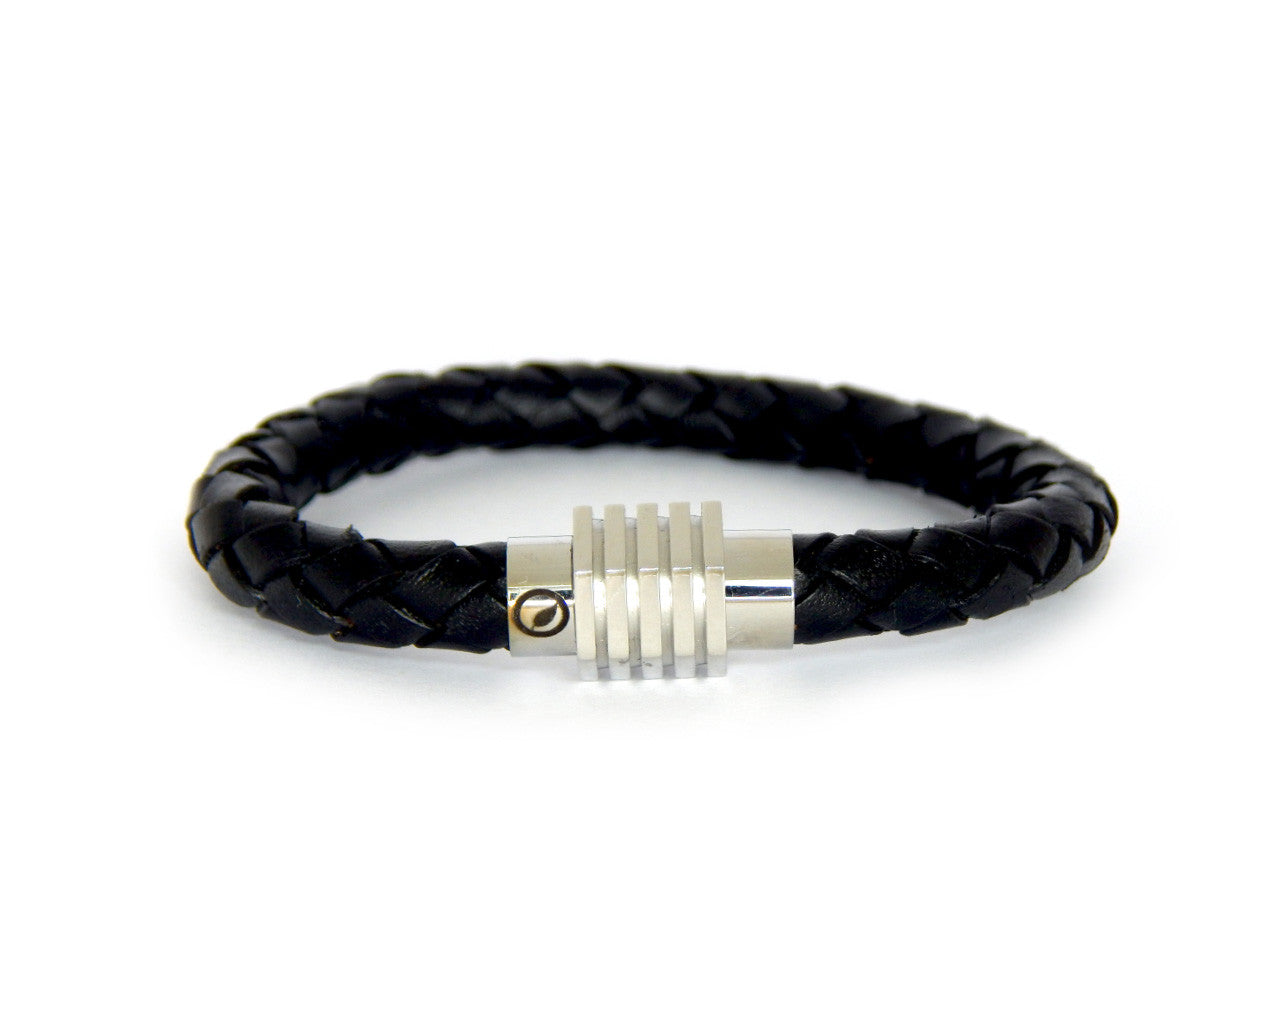 Men's Nappa Leather Bracelet LT-08 - Natural Clothes Bamboo Clothing & Accessories for Men & Women